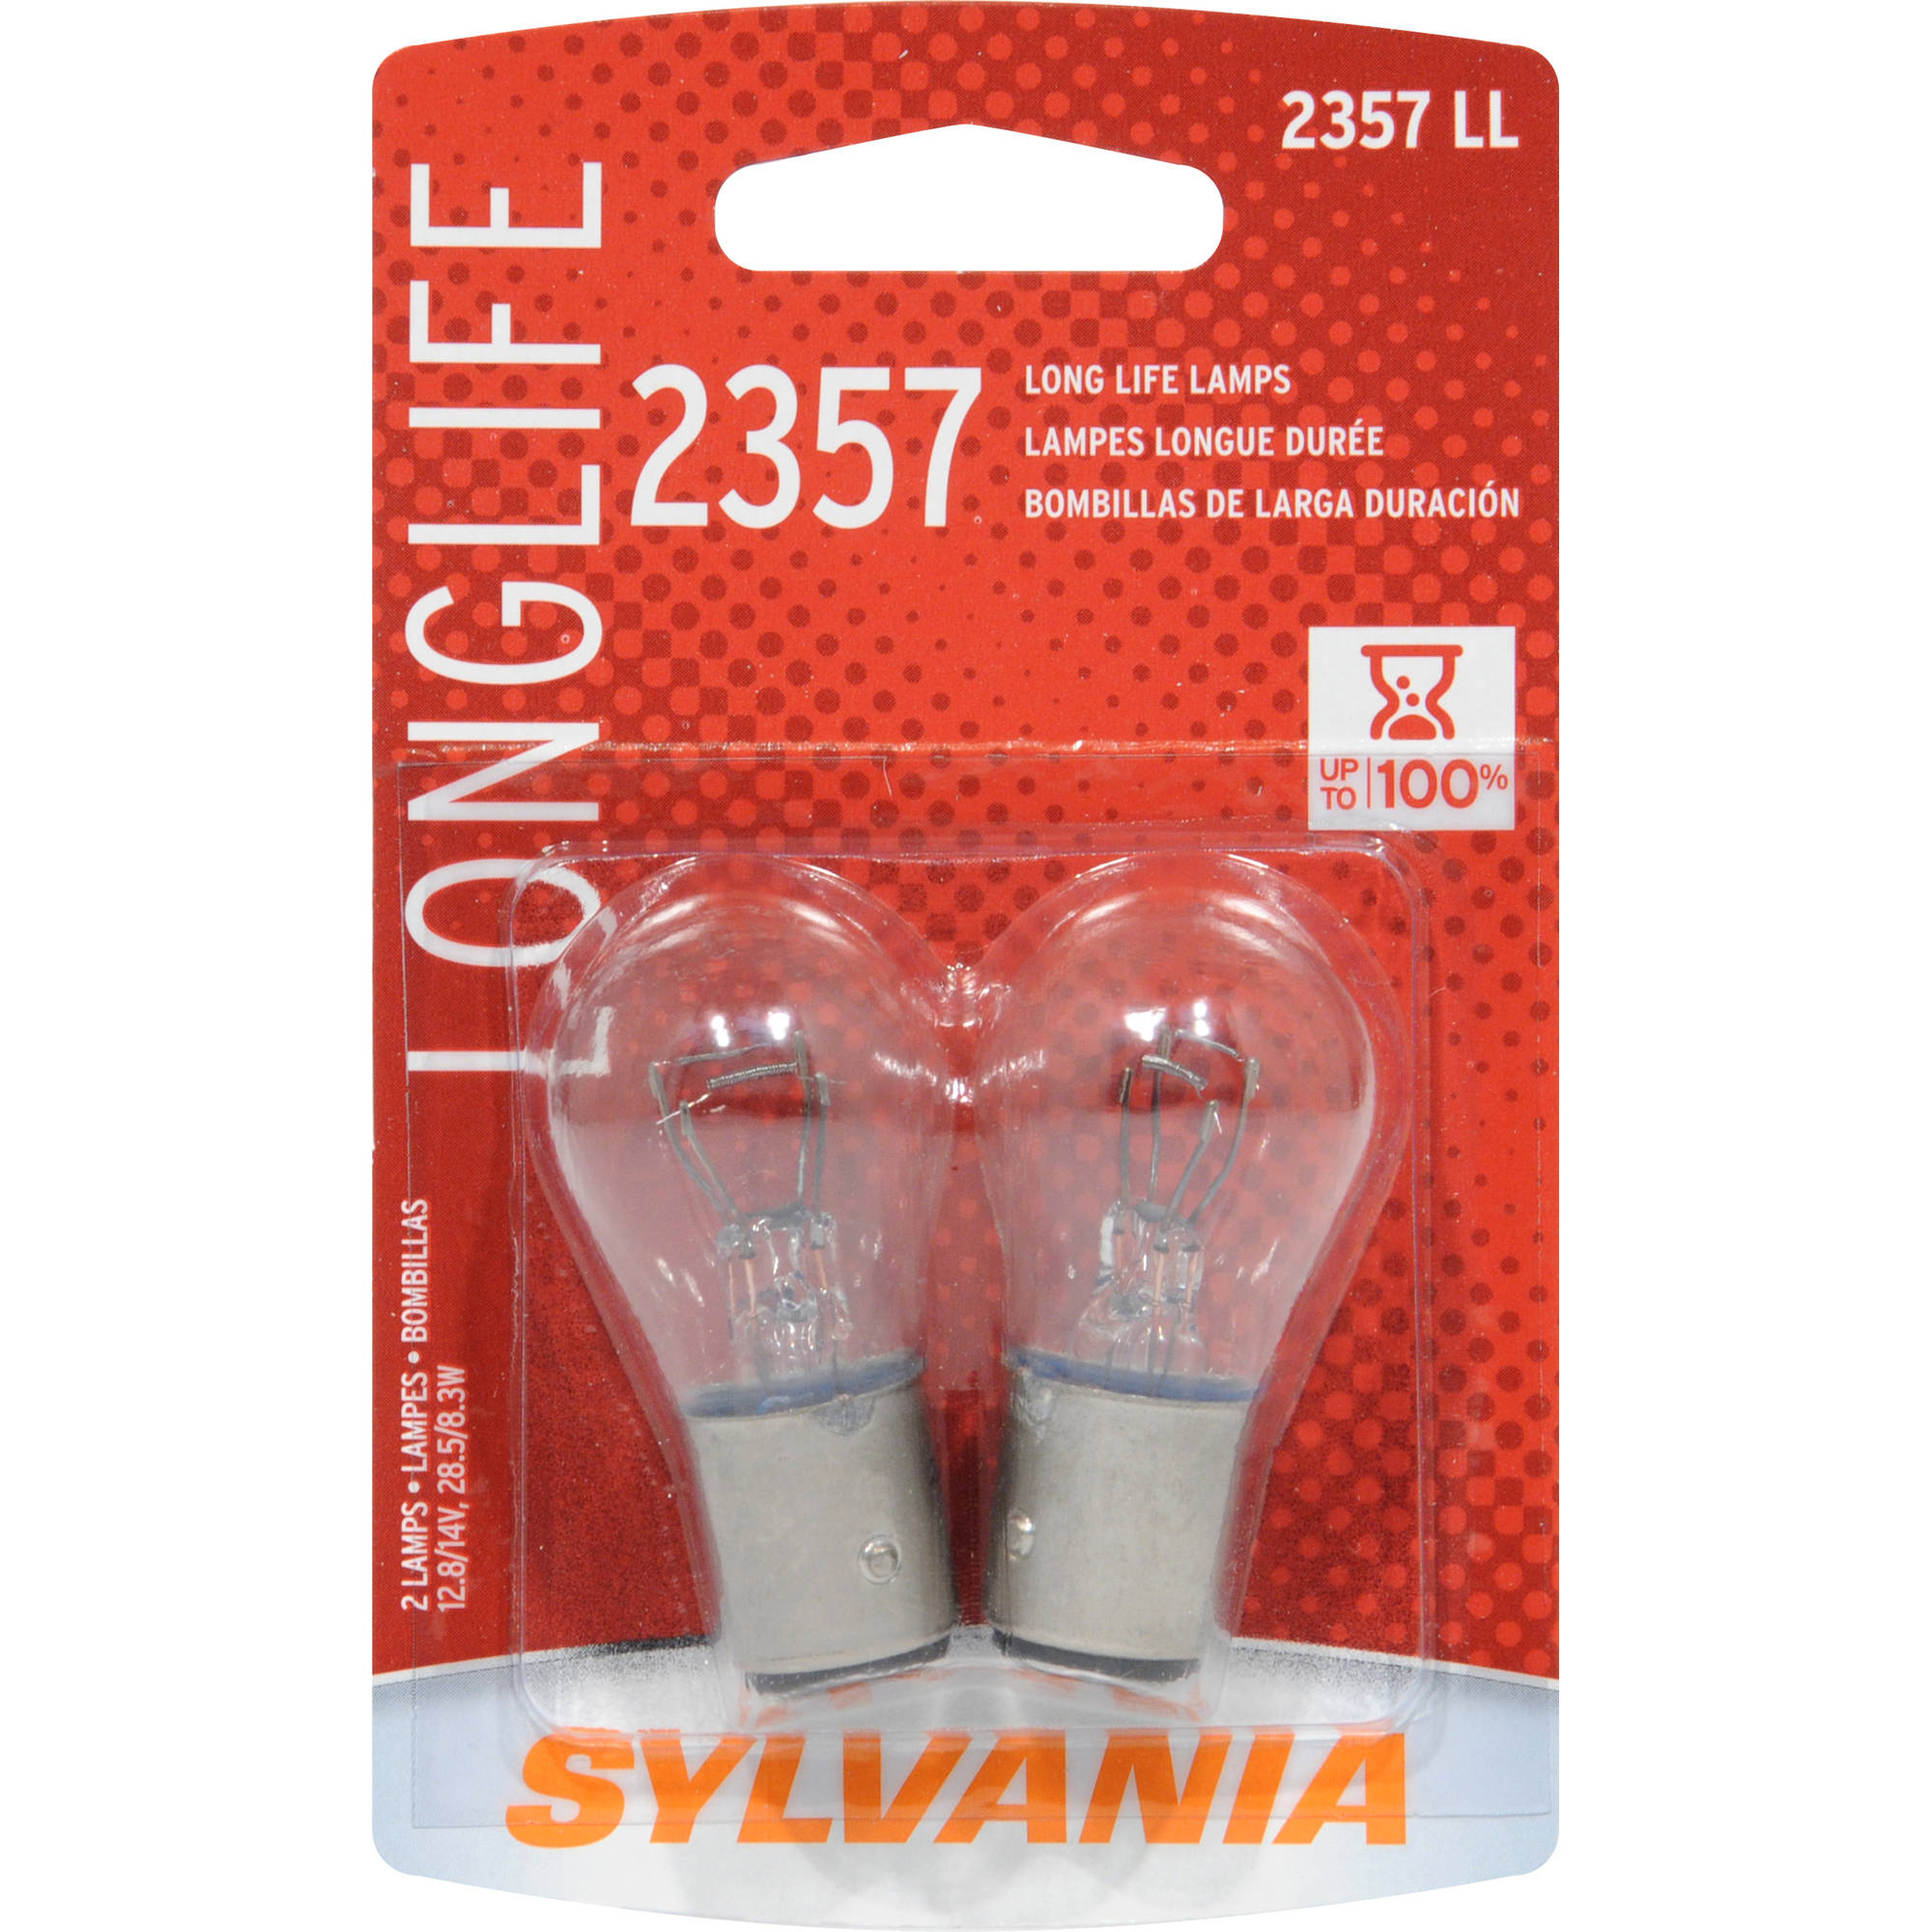 Sylvania 2357 Long-Life Miniature Bulb, Twin Pack